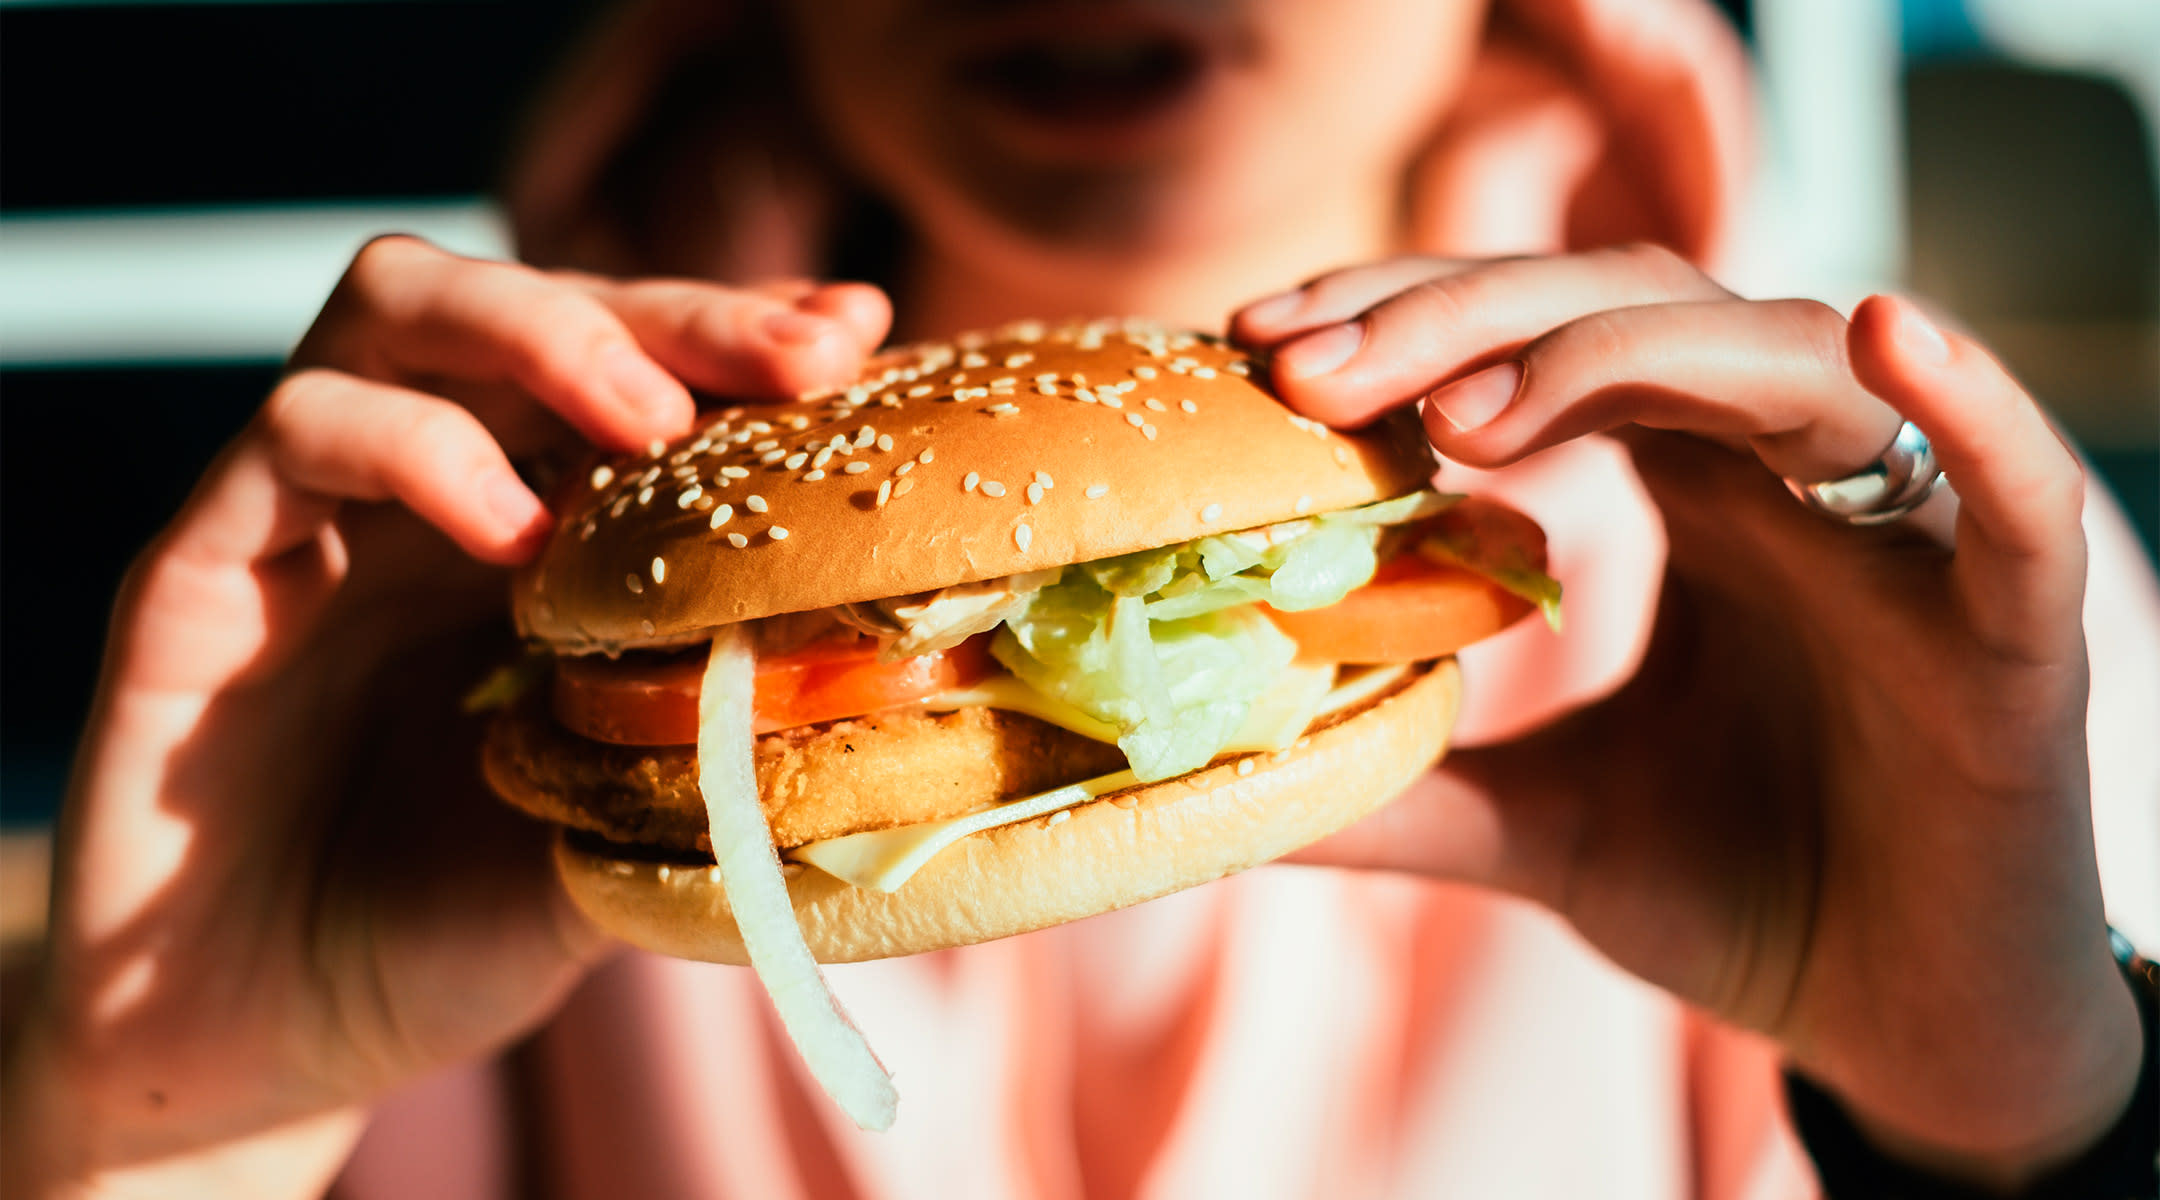 woman holding fast food burger